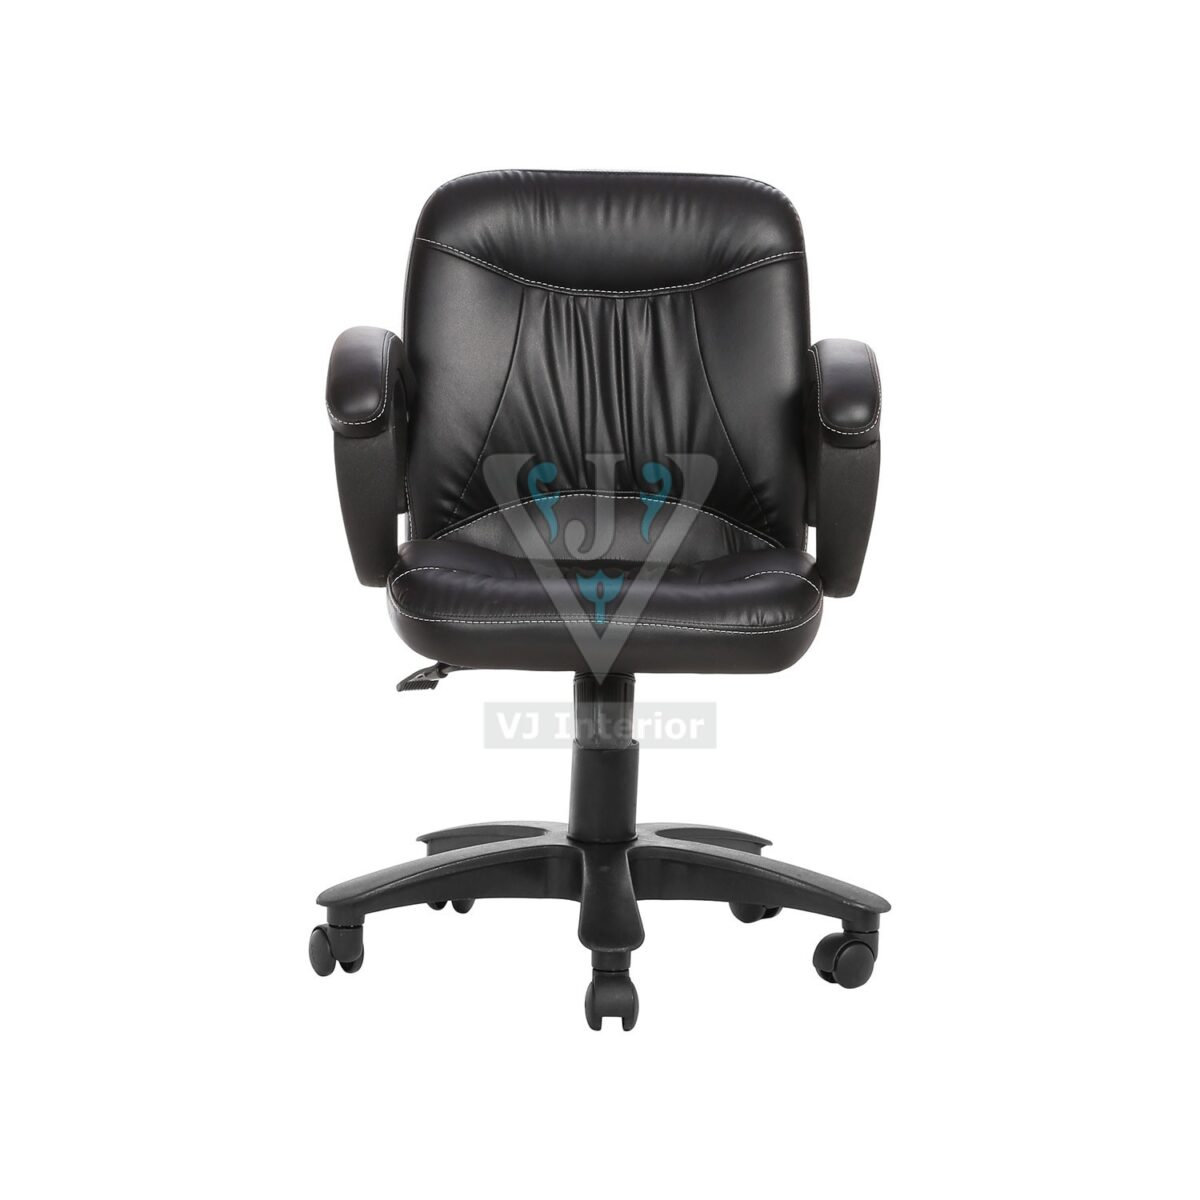 THE DELANTAL LB WORKSTAION CHAIR BLACK